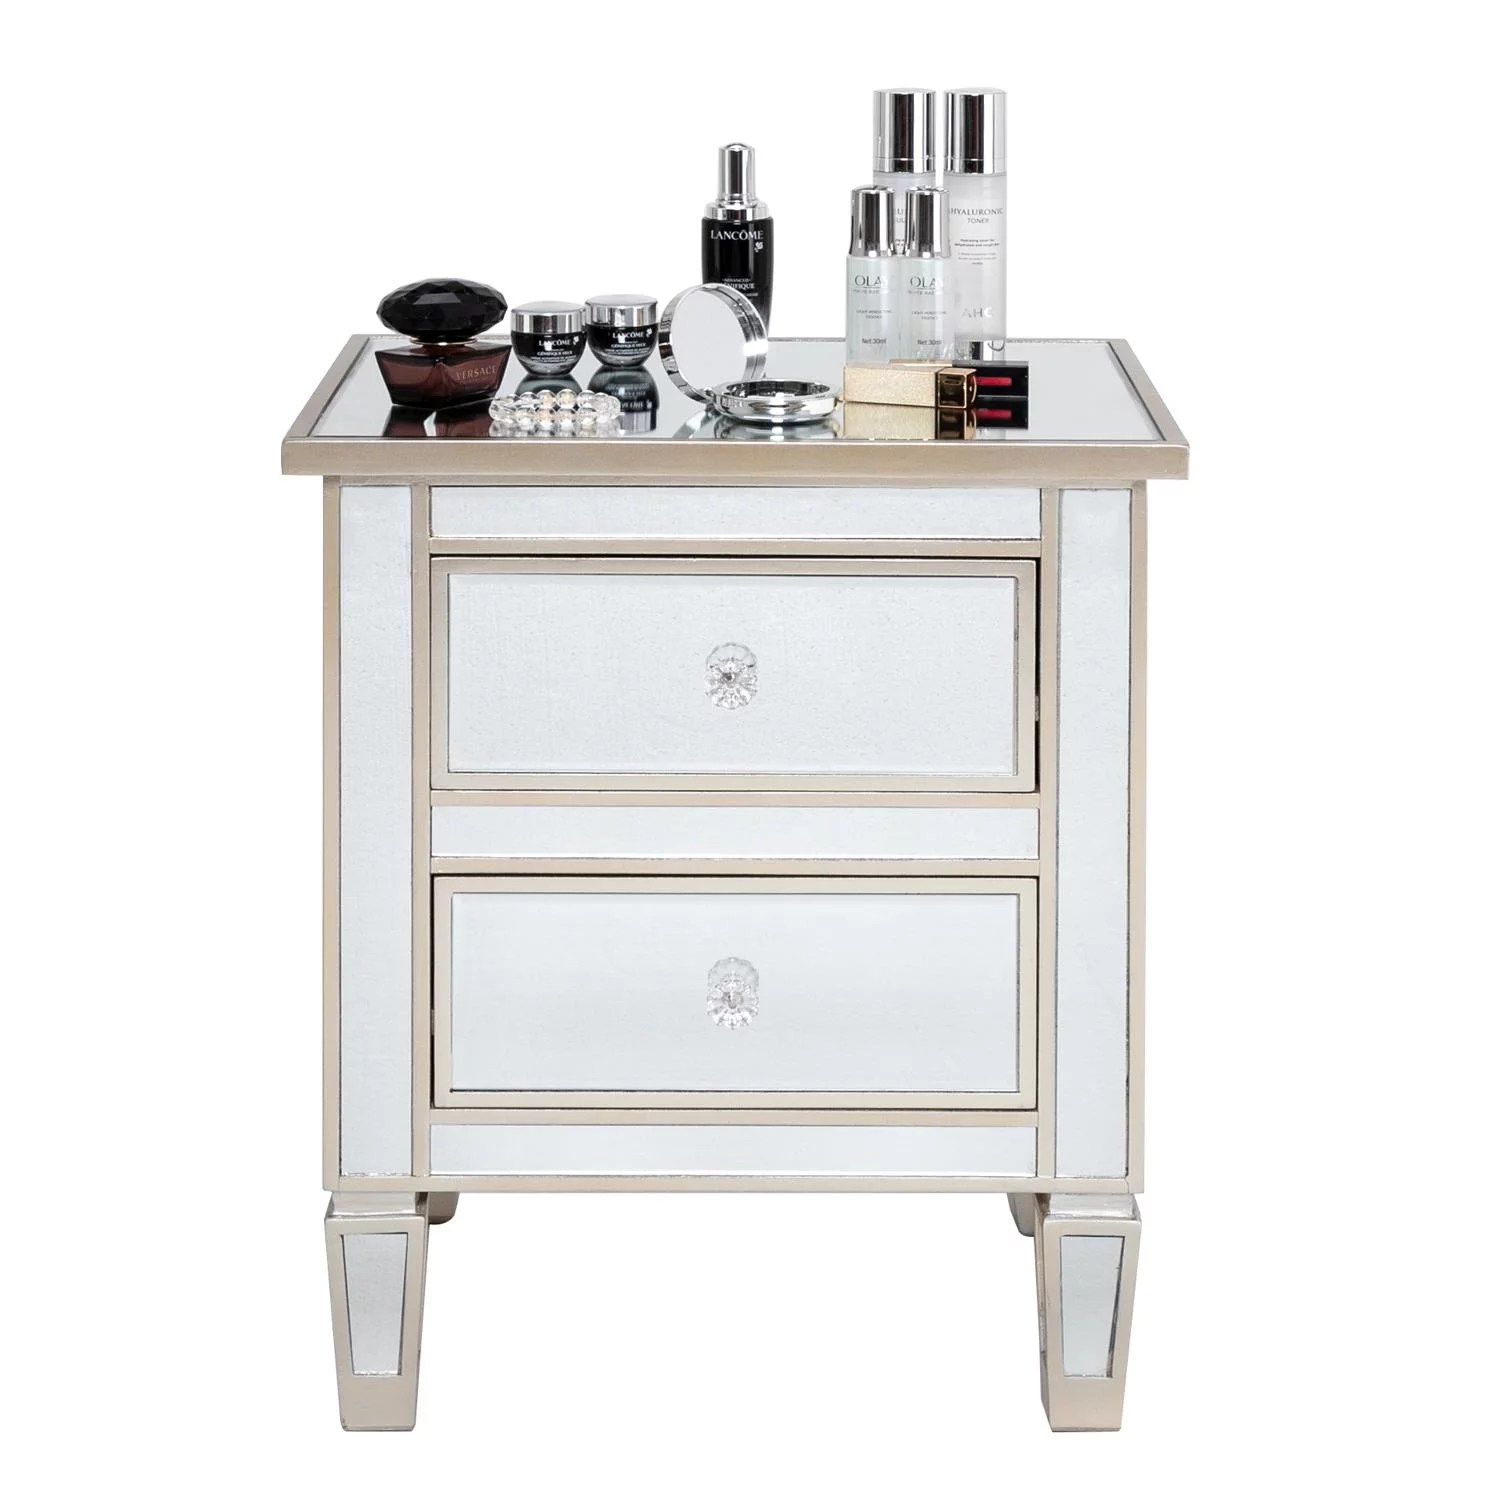 zimtown mirrored nightstand 2 drawer modern mirror end table bedside table for bedroom living room silver rose walmart com